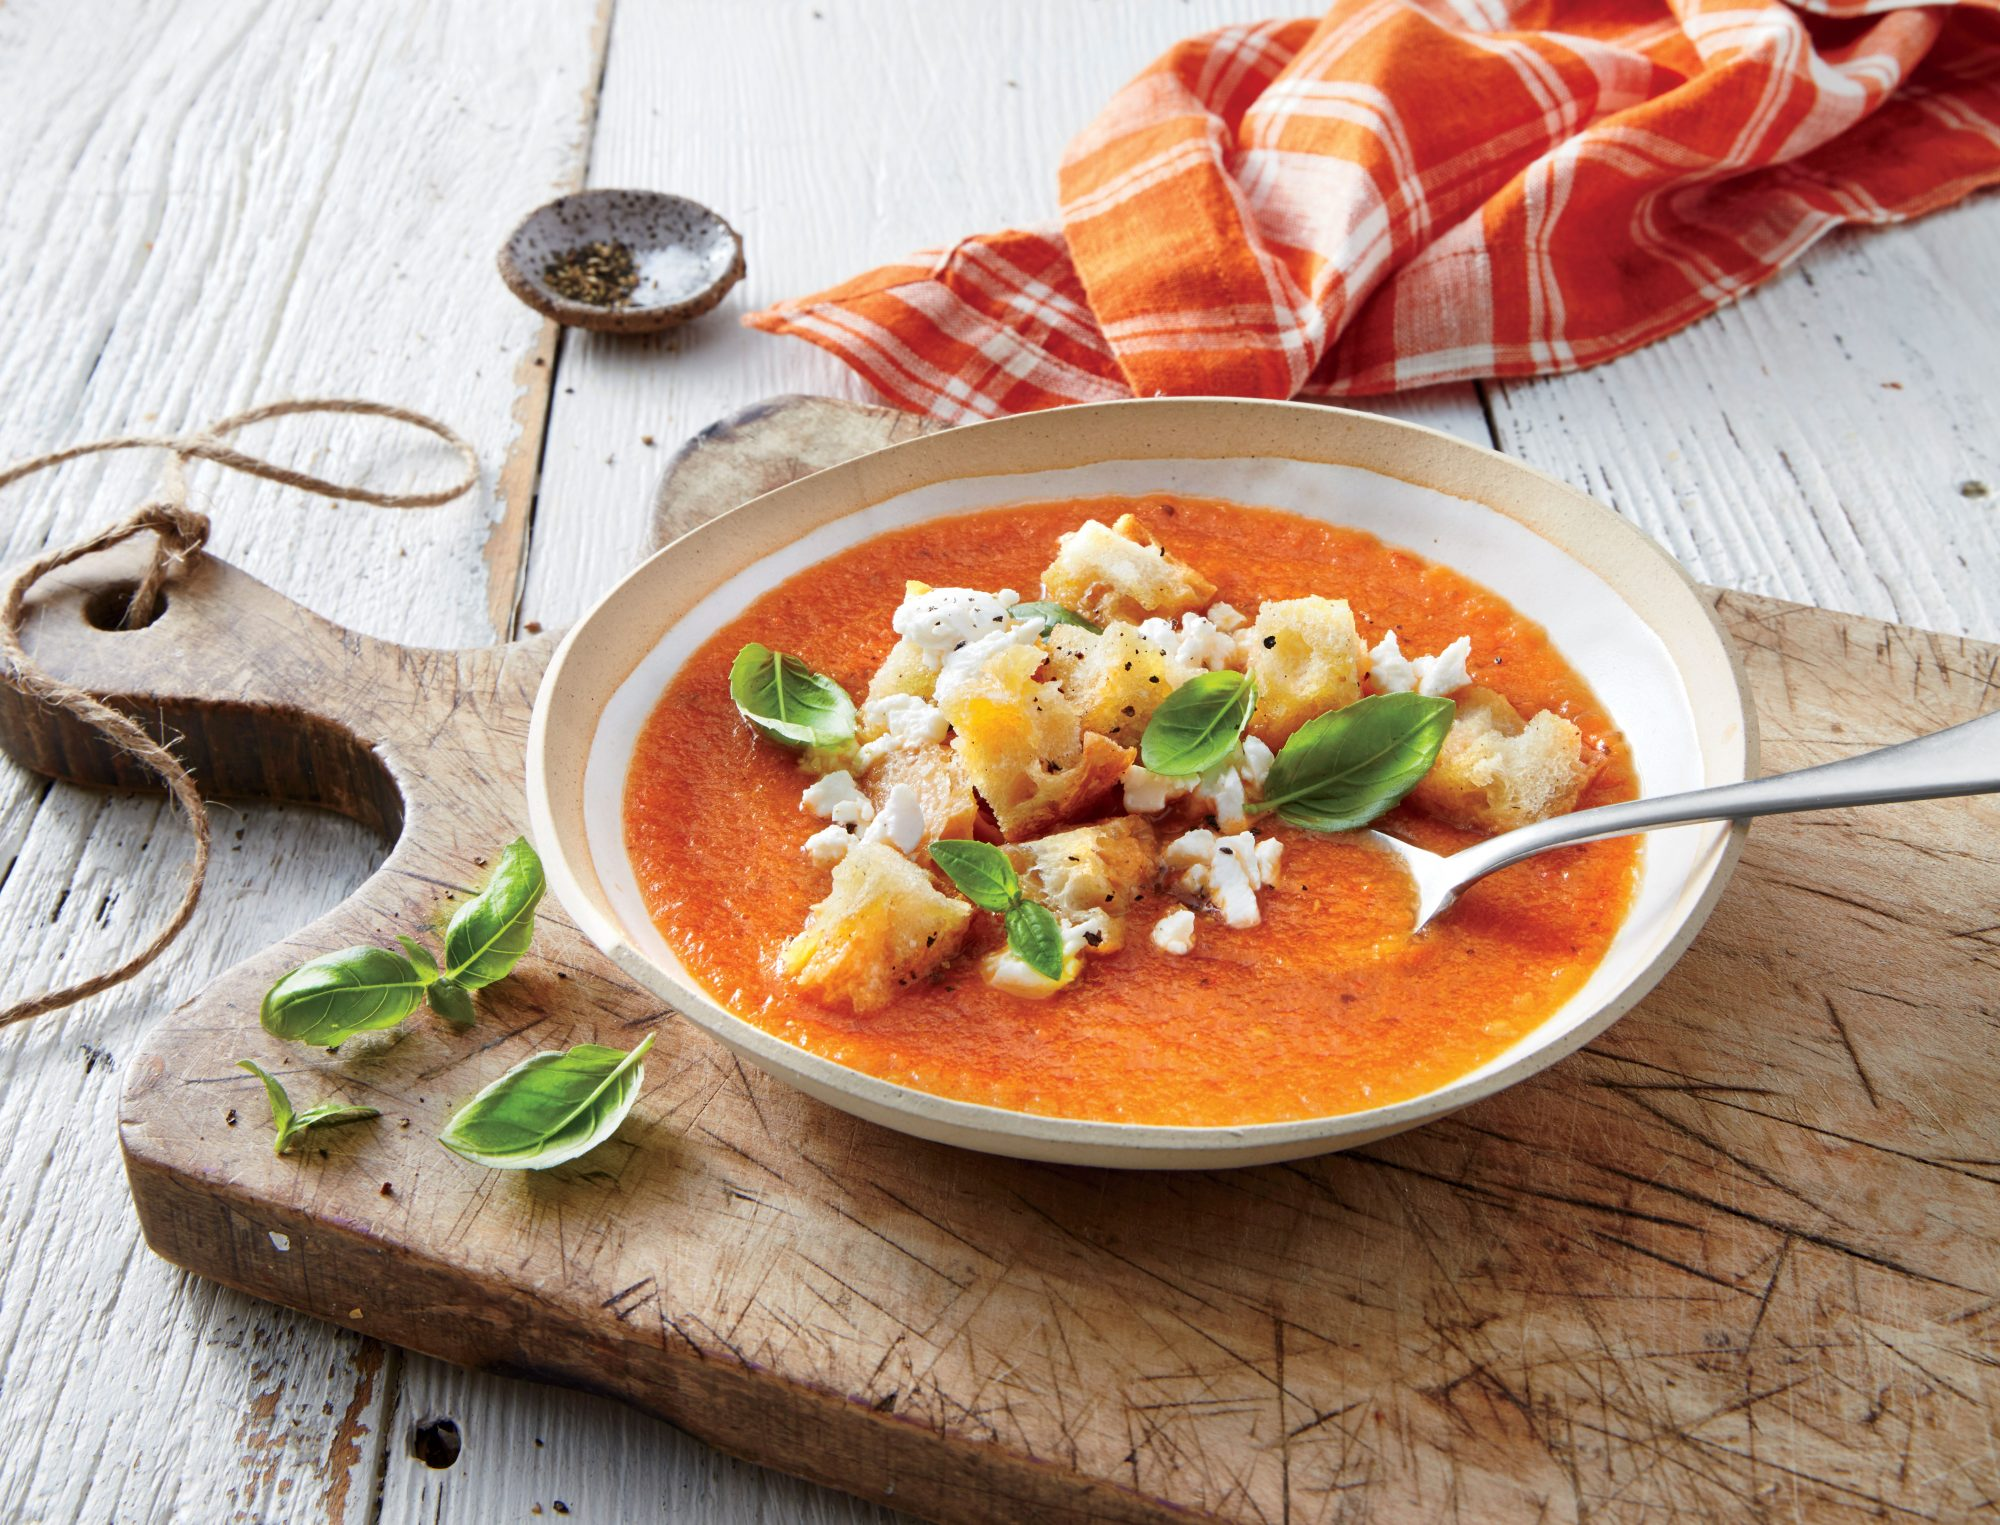 Roasted Tomato-Eggplant Soup with Garlic Croutons Recipe